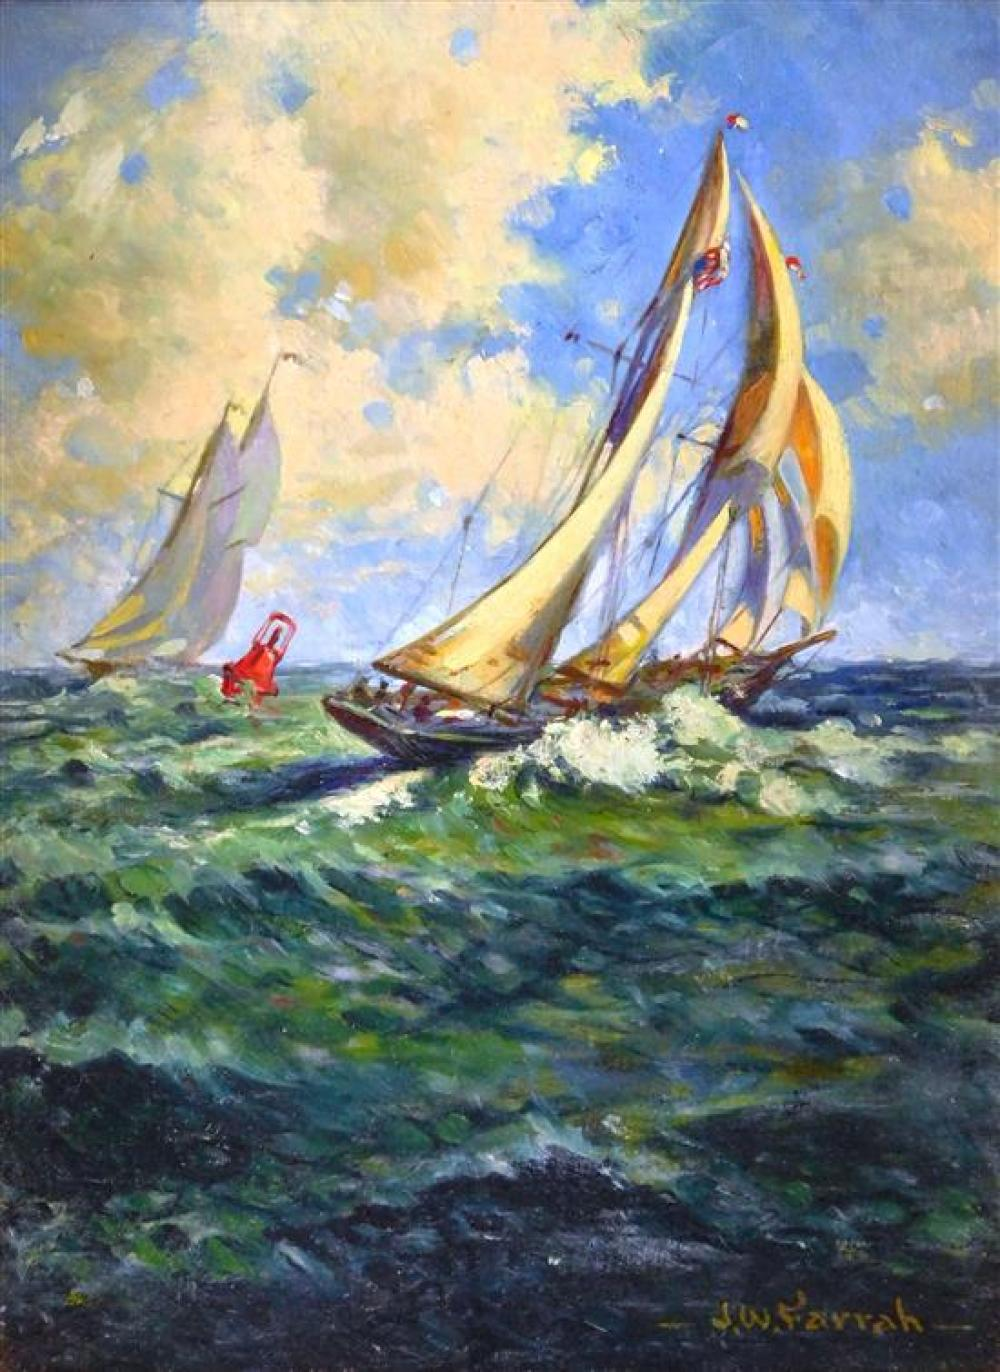 20th C. oil on board of racing sloops, signed